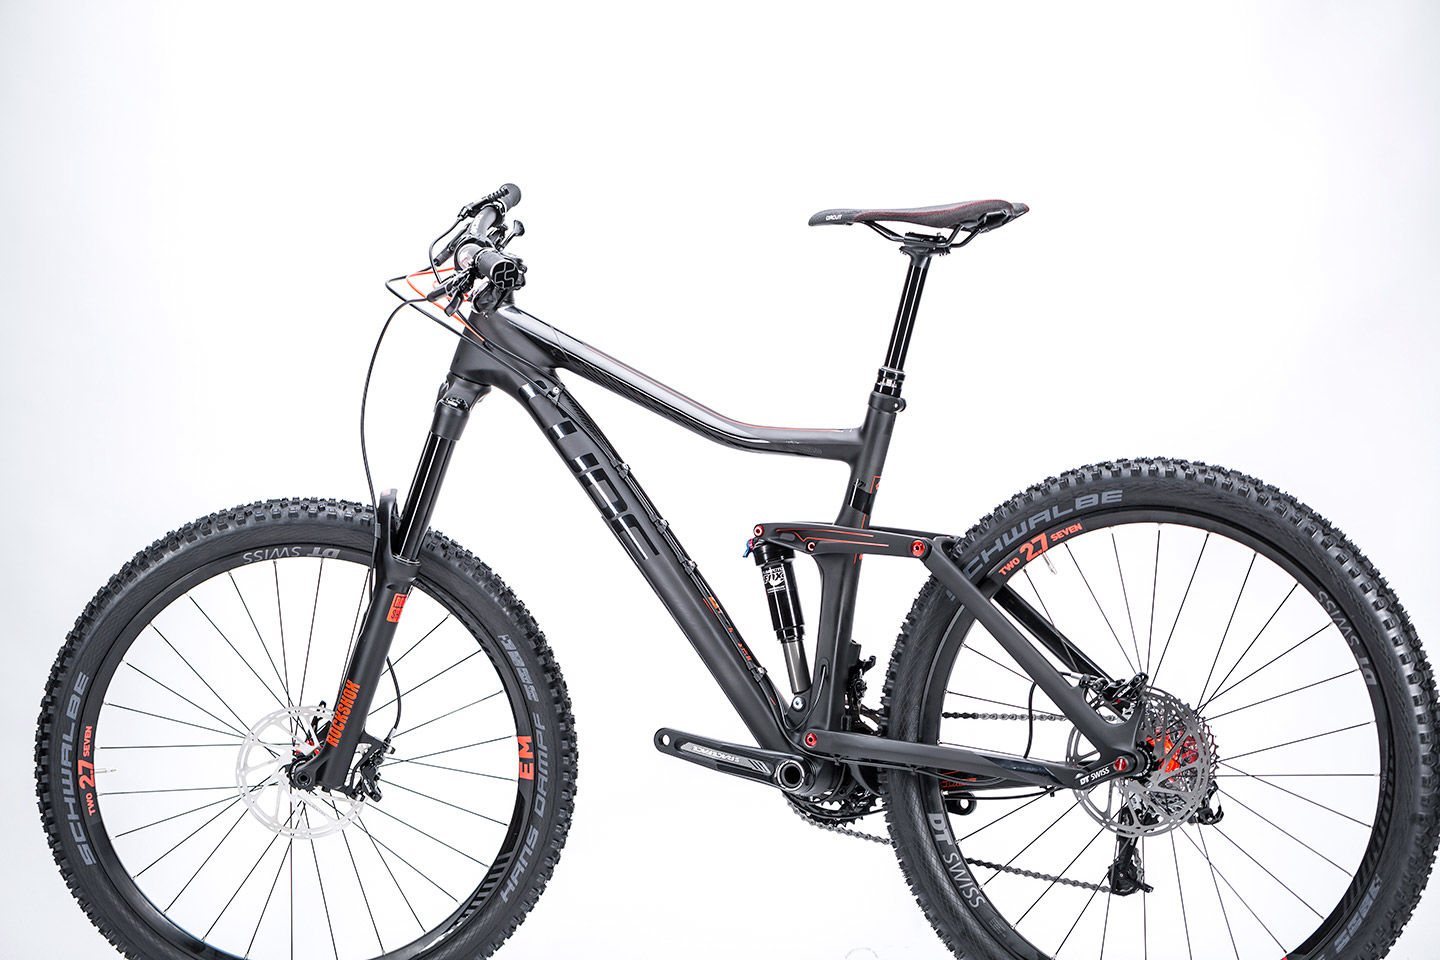 Cube Stereo 160 Hpa Race 27 5 2015 Review The Bike List